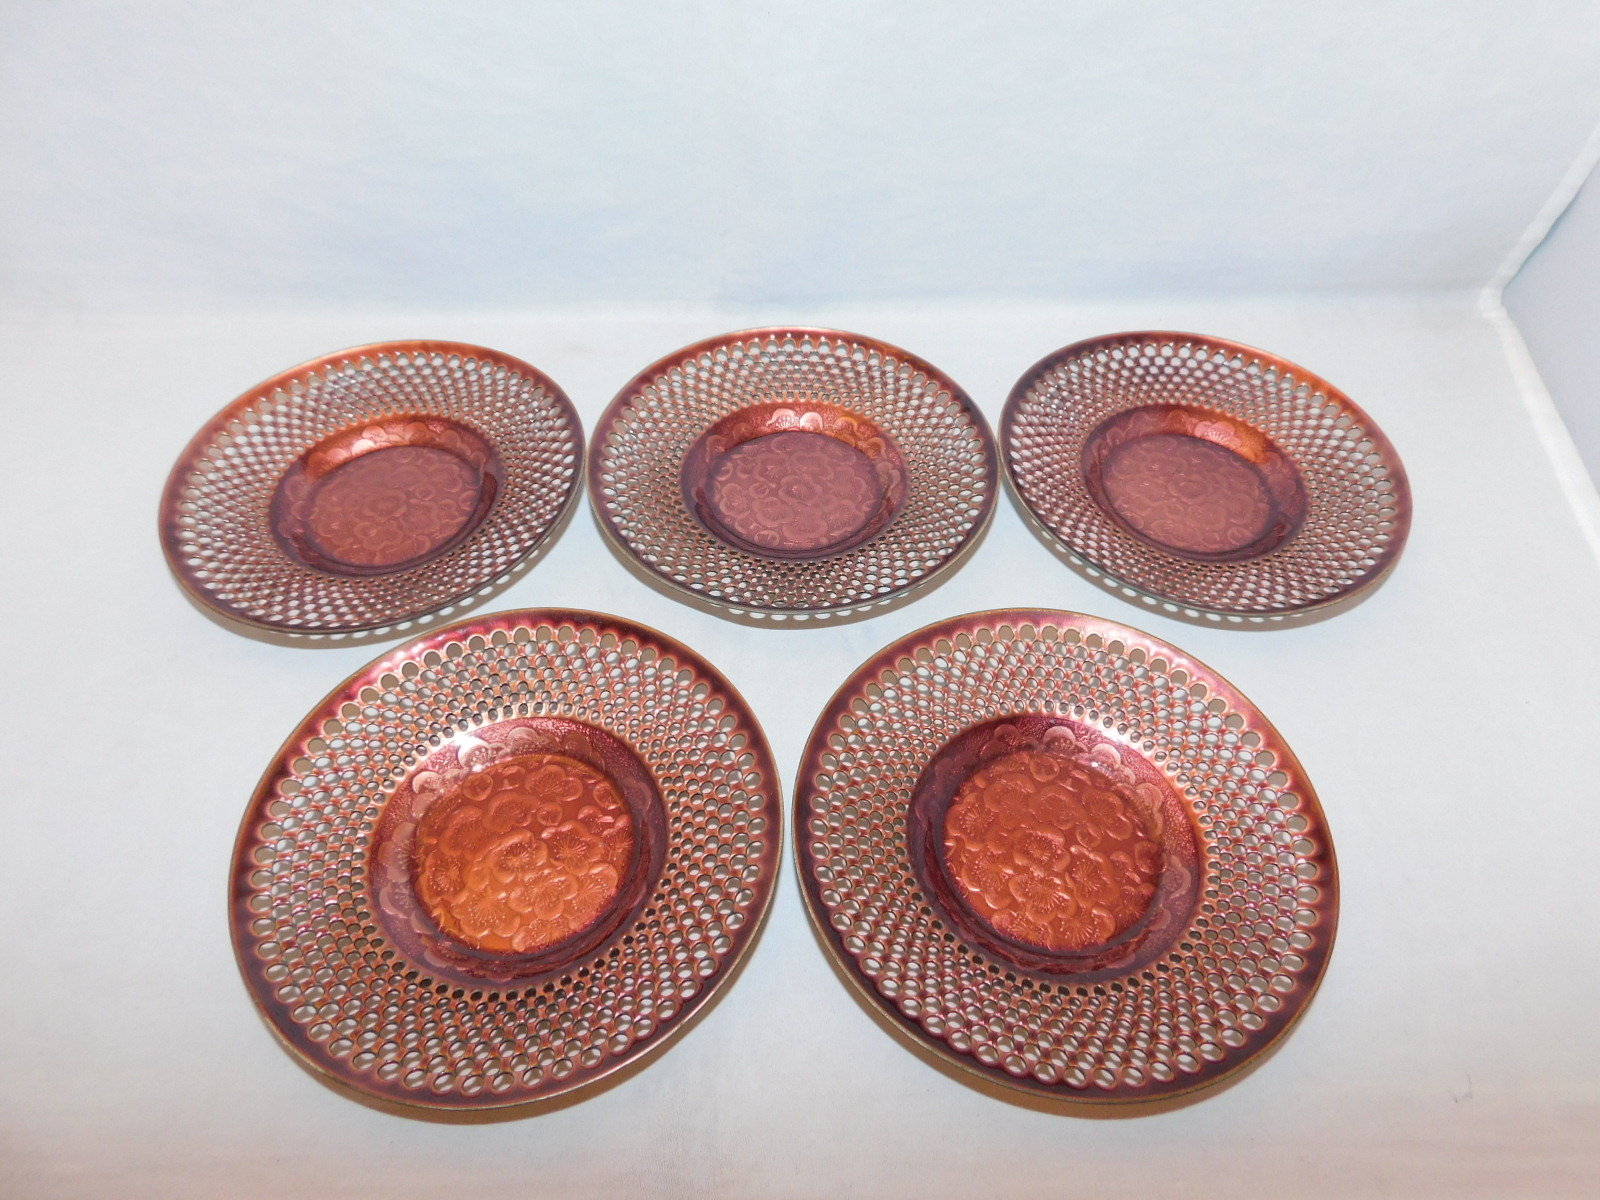 七宝梅茶托5客) cloisonné enamel Japanese tea five saucers (No10)